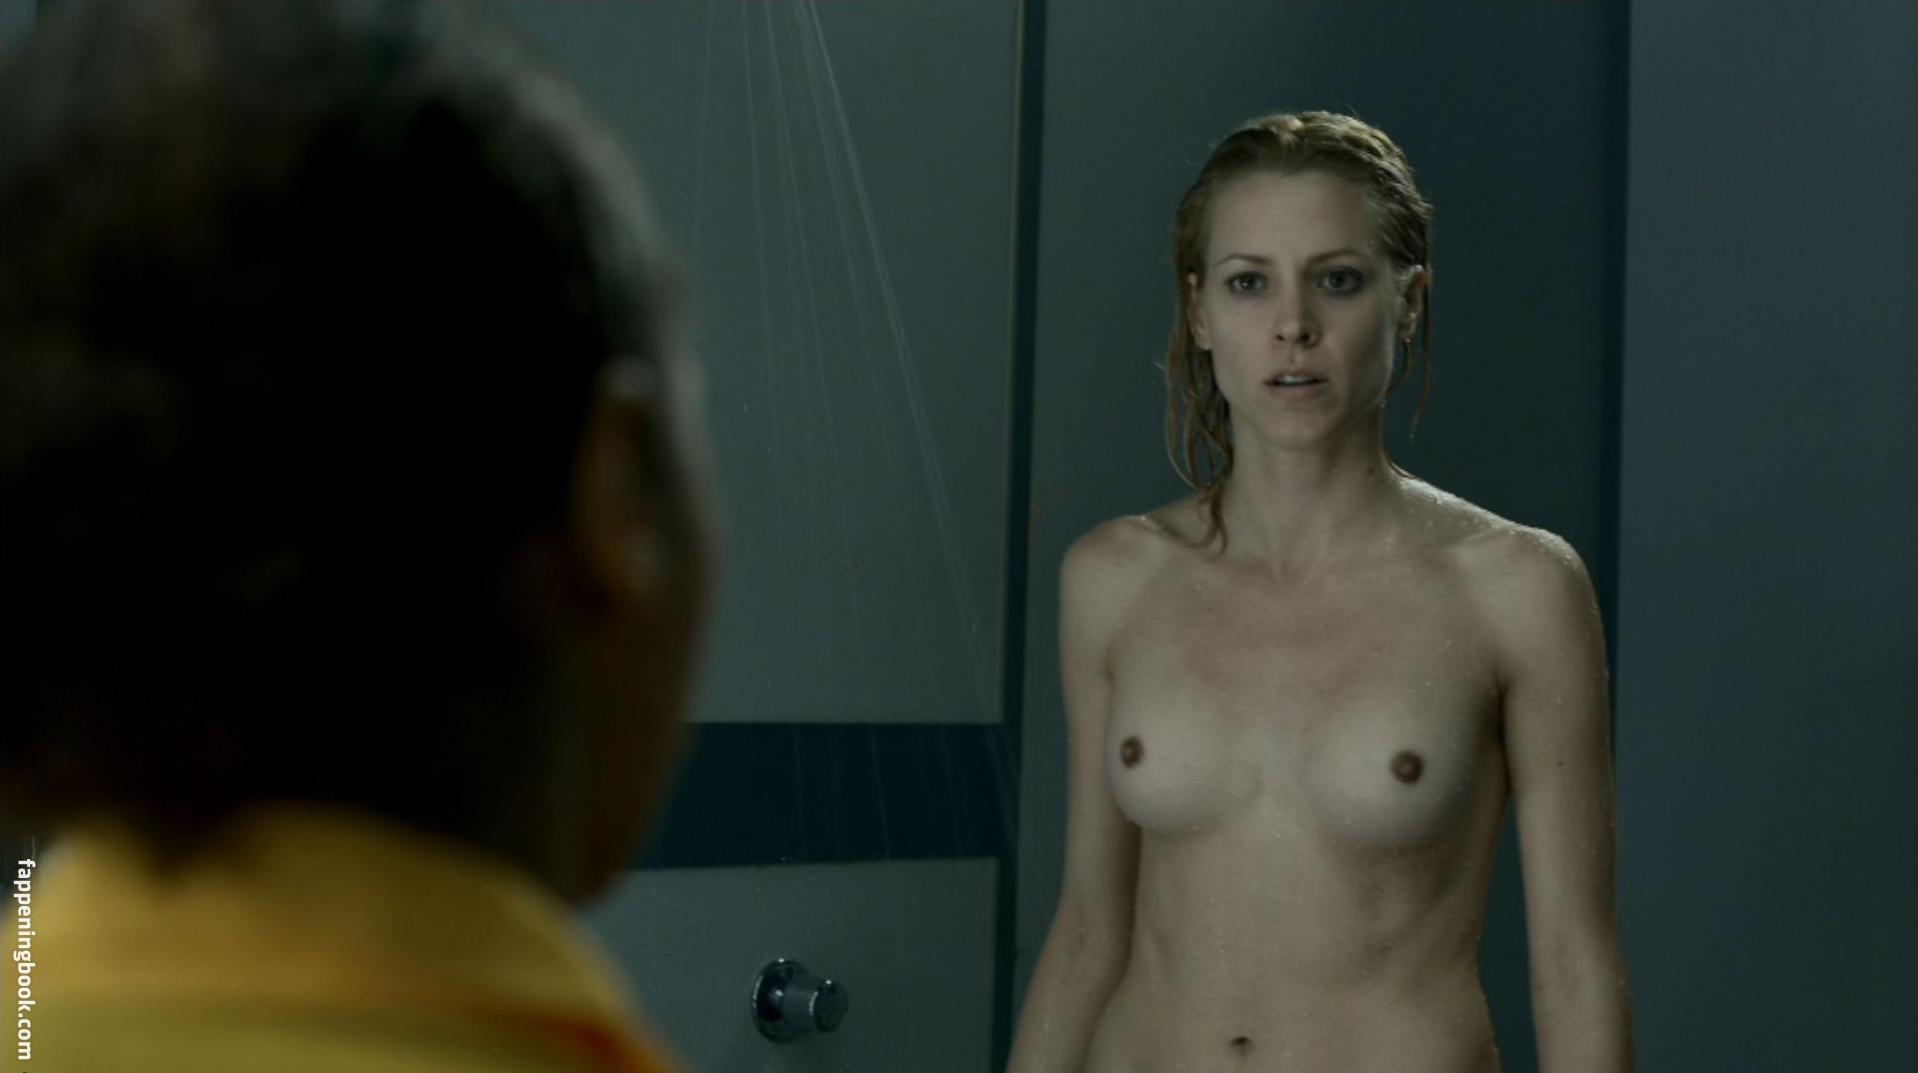 Angela Dodson Porn maggie civantos nude, sexy, the fappening, uncensored